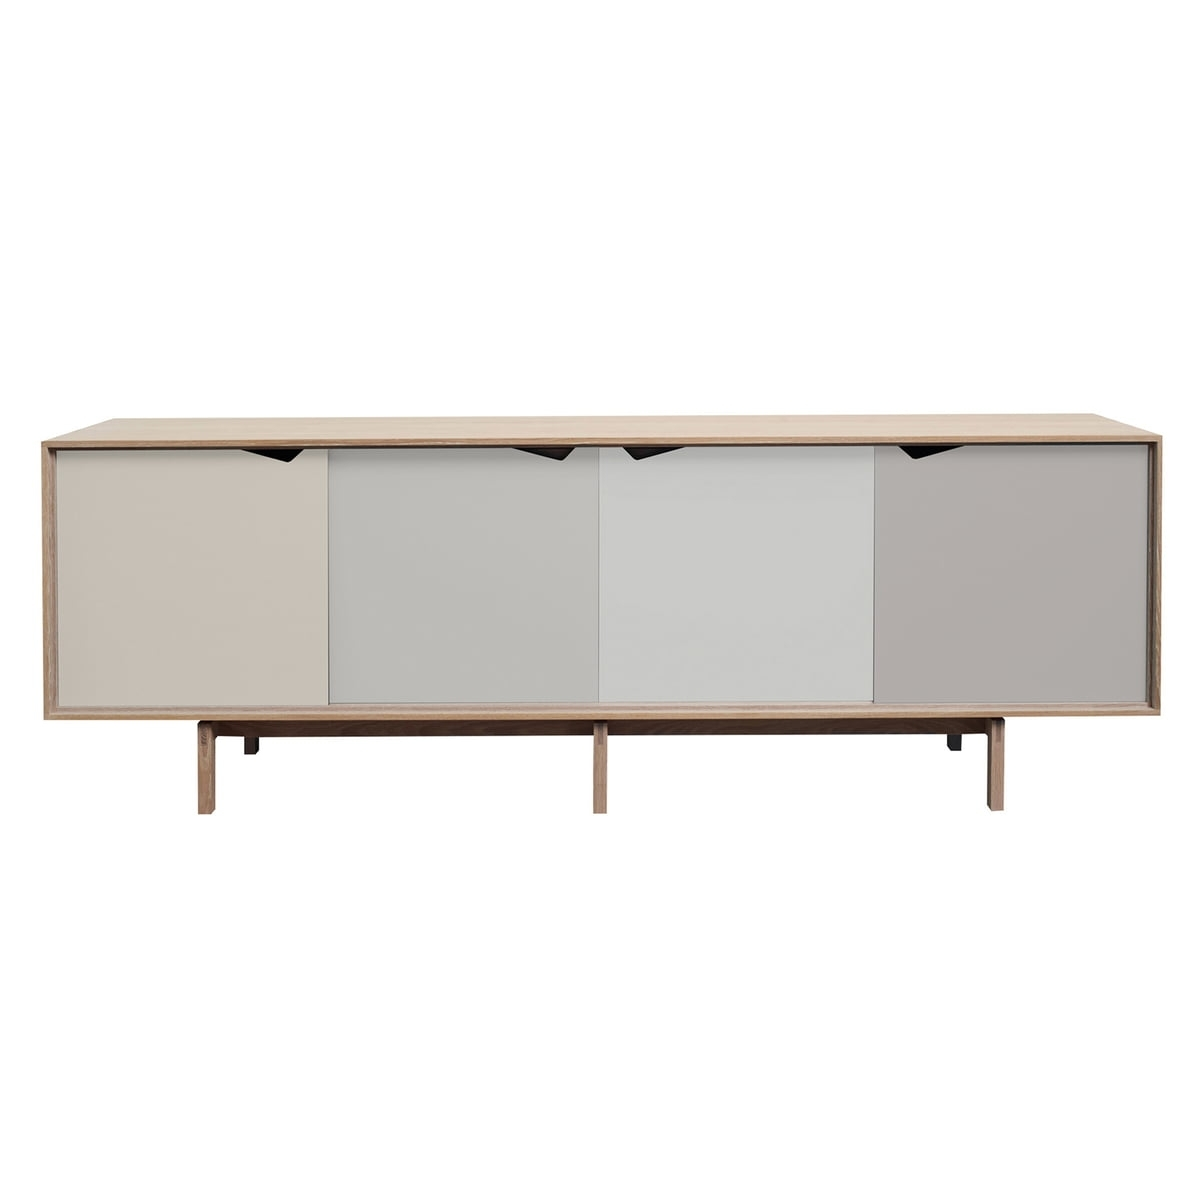 S1 Sideboard Multicoloured Andersen Furniture throughout Iron Sideboards (Image 21 of 30)